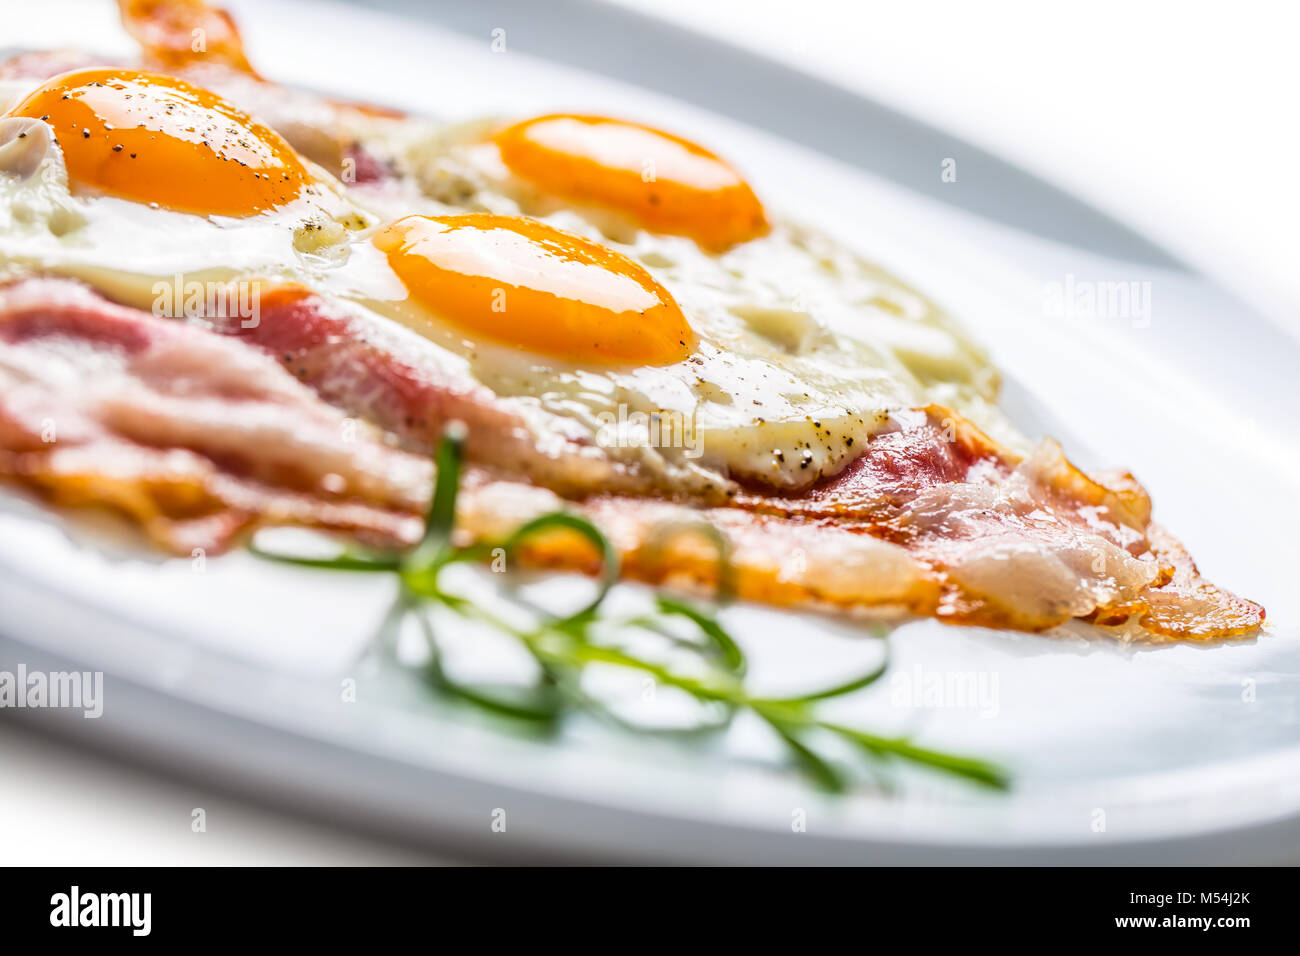 Ham and Eggs. Bacon and Eggs. Salted egg with pepper on white plate. English breakfast. - Stock Image